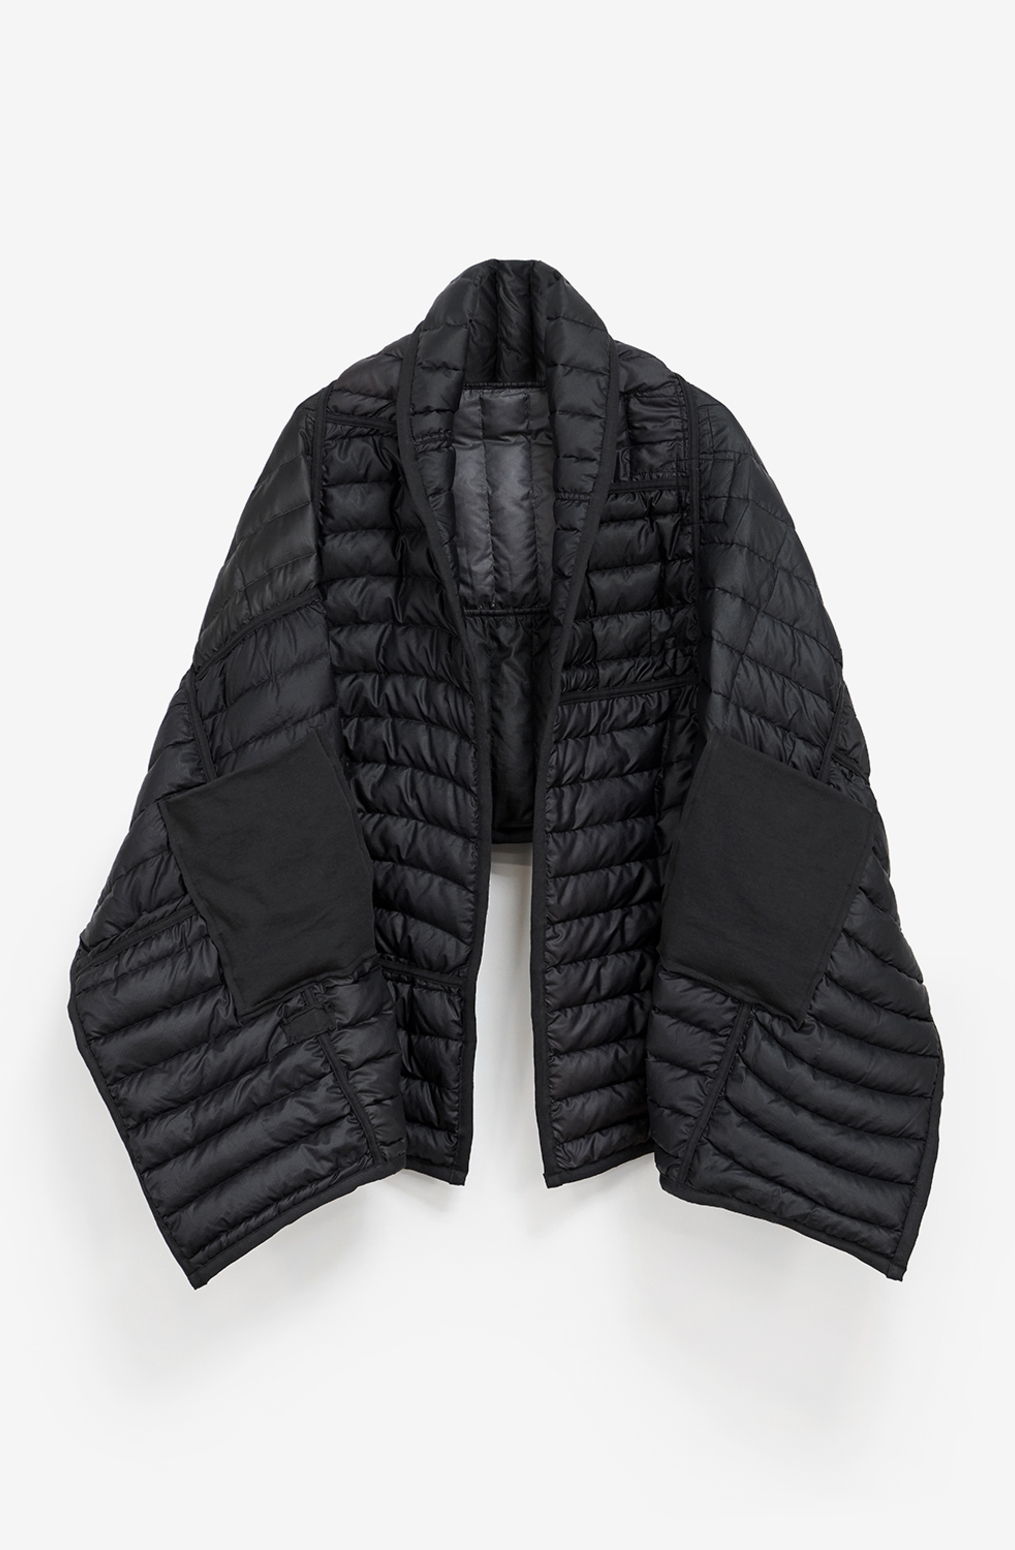 Alabama chanin patagonia collaboration reclaimed down wrap accessory 6